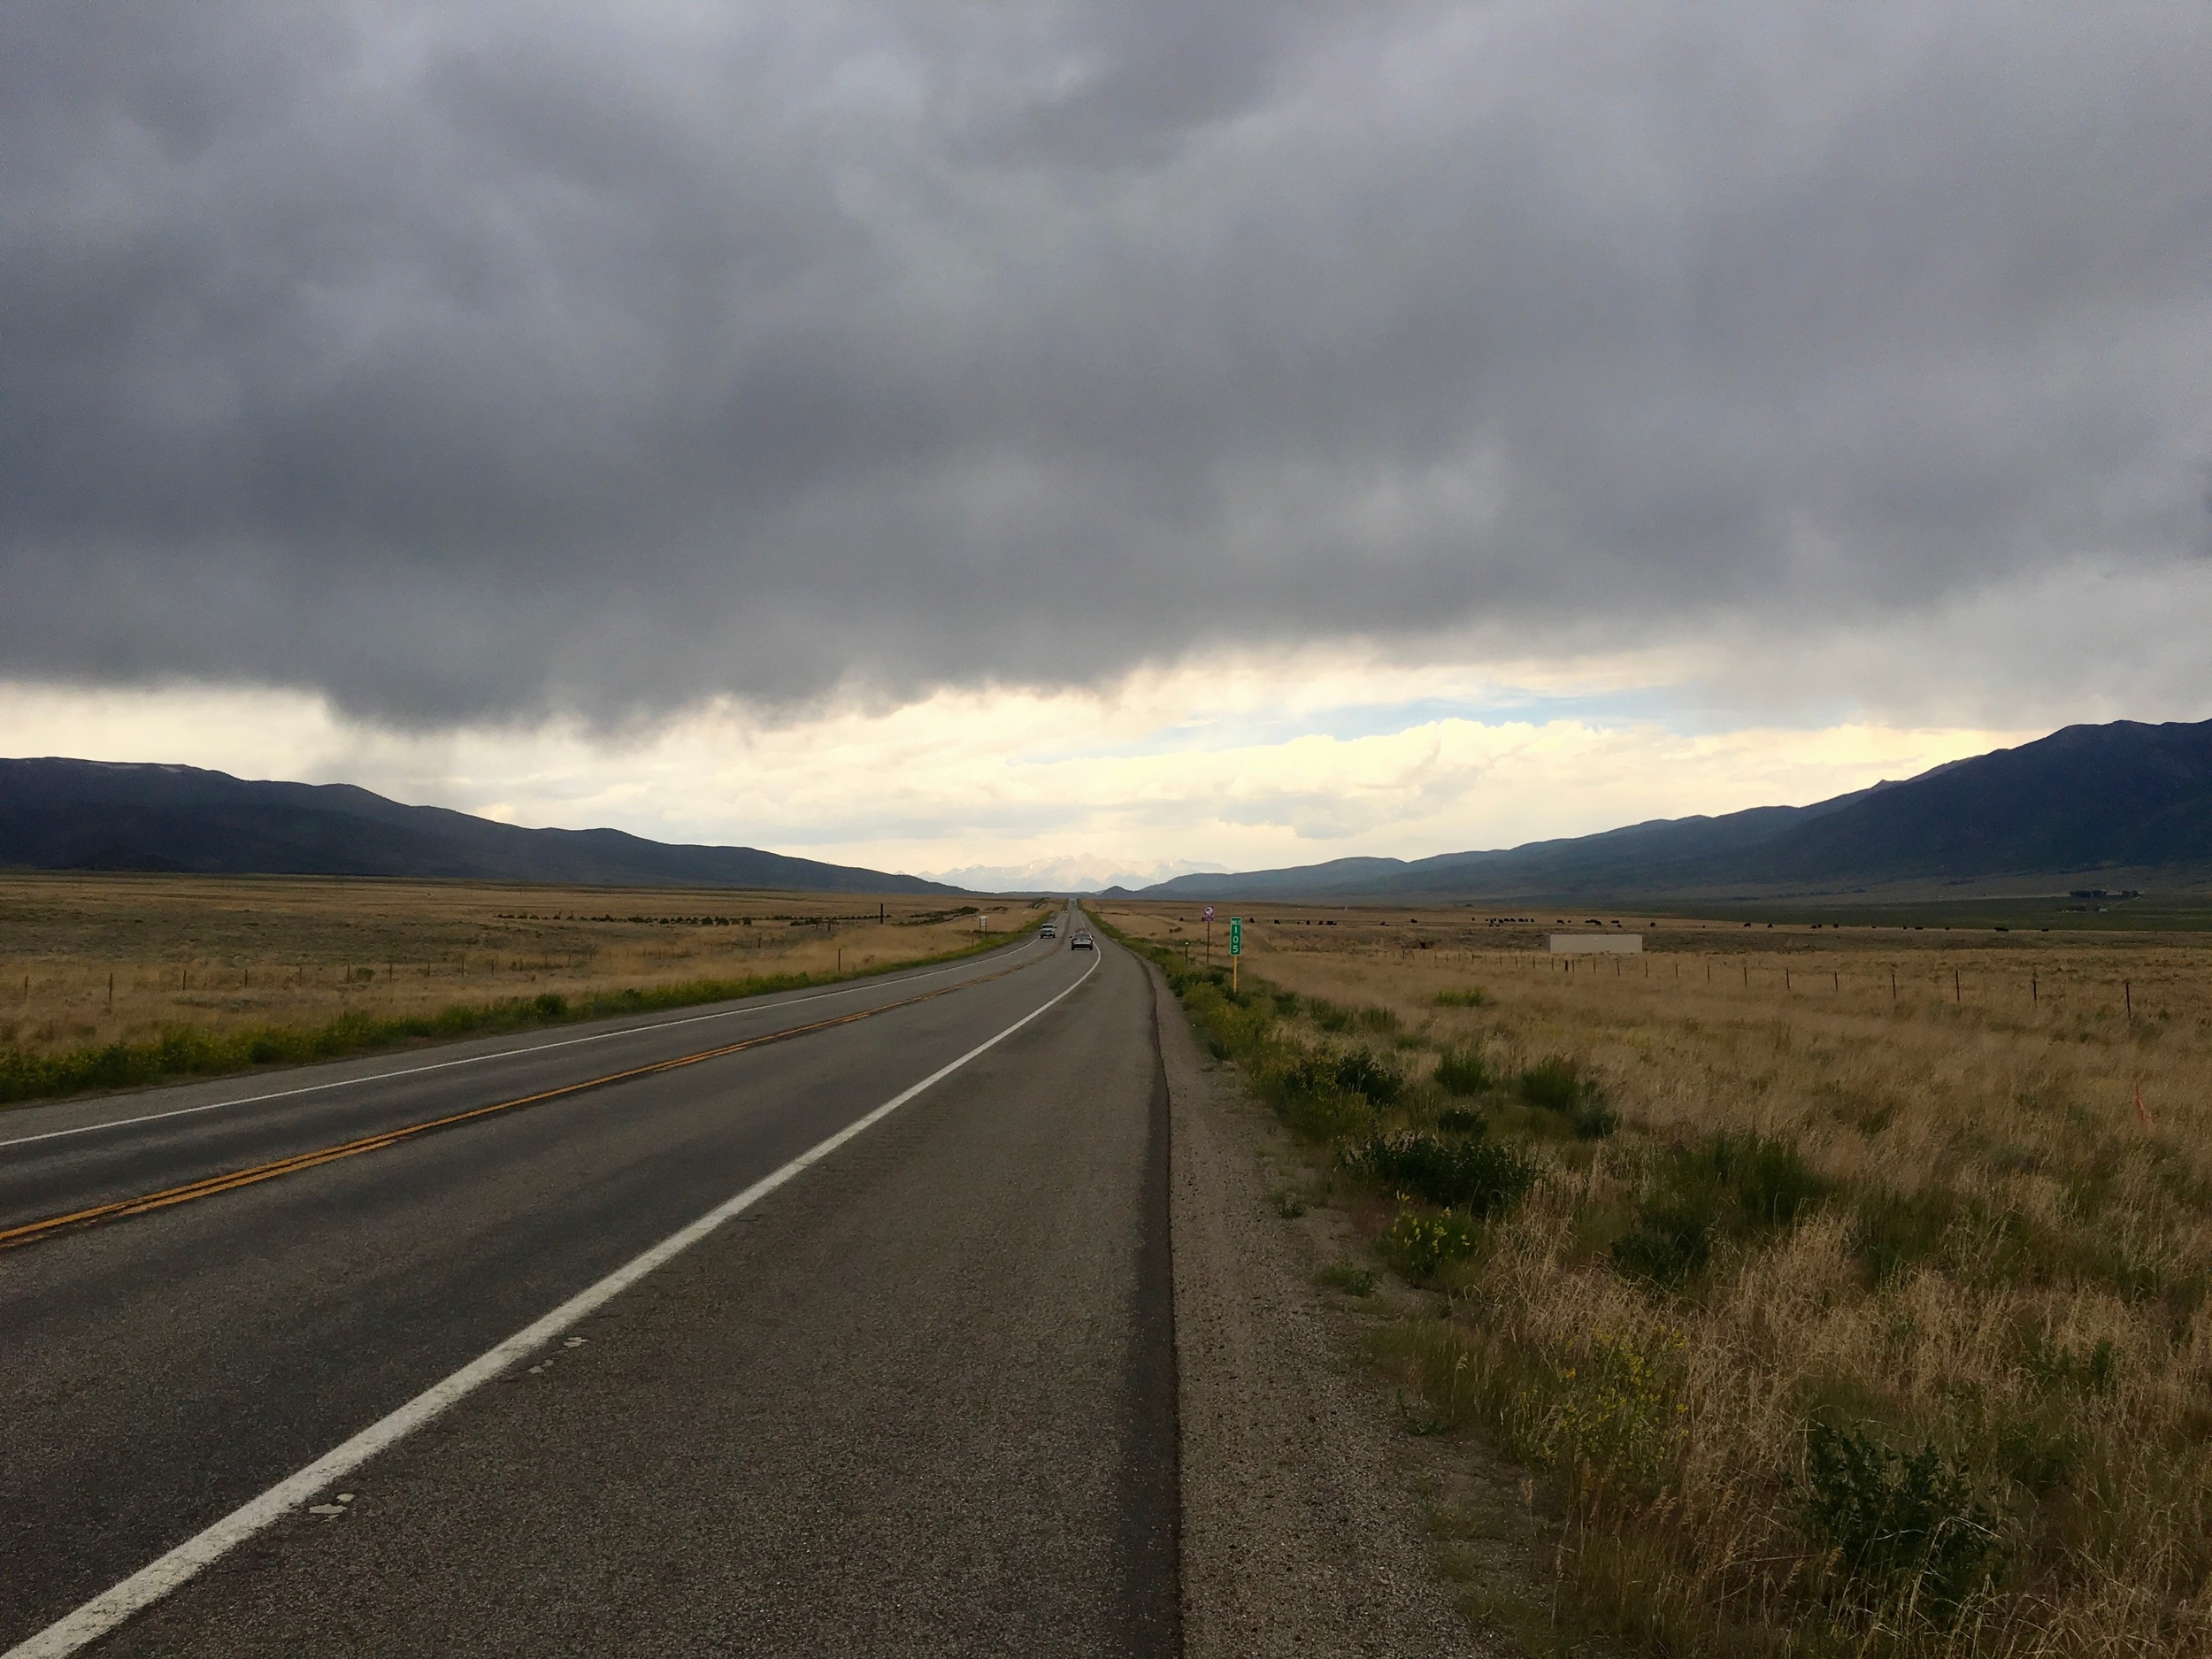 Not far from where I camped during an intense wind and thunderstorm.